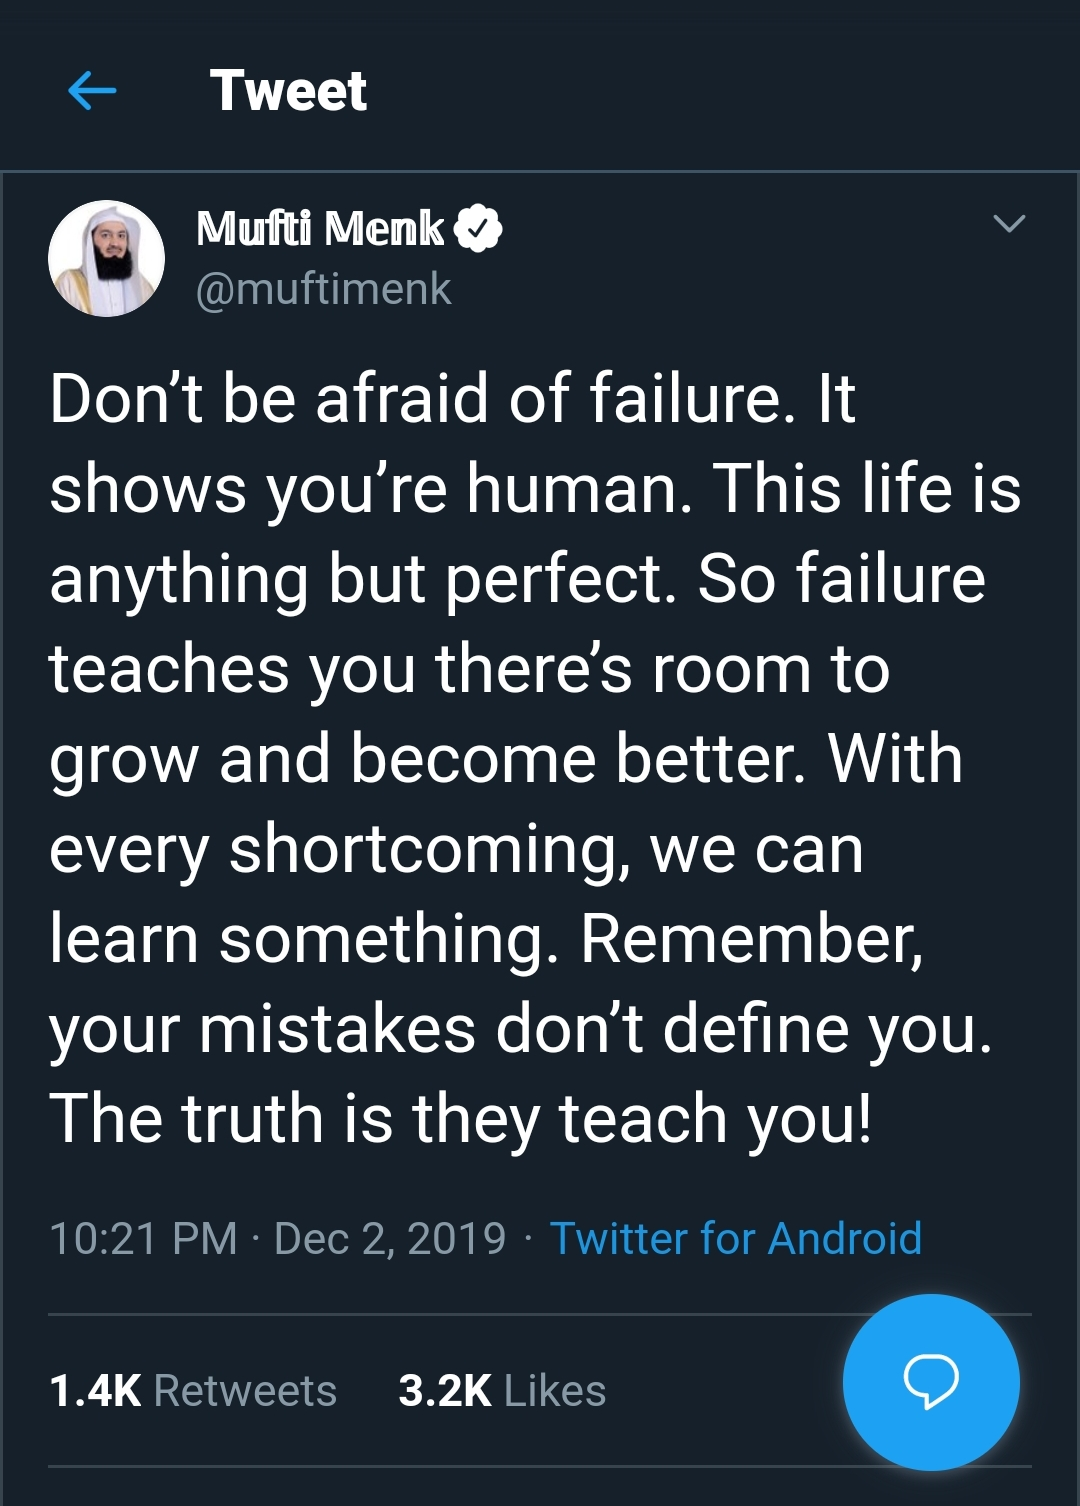 [Image] Don't be afraid of failure.